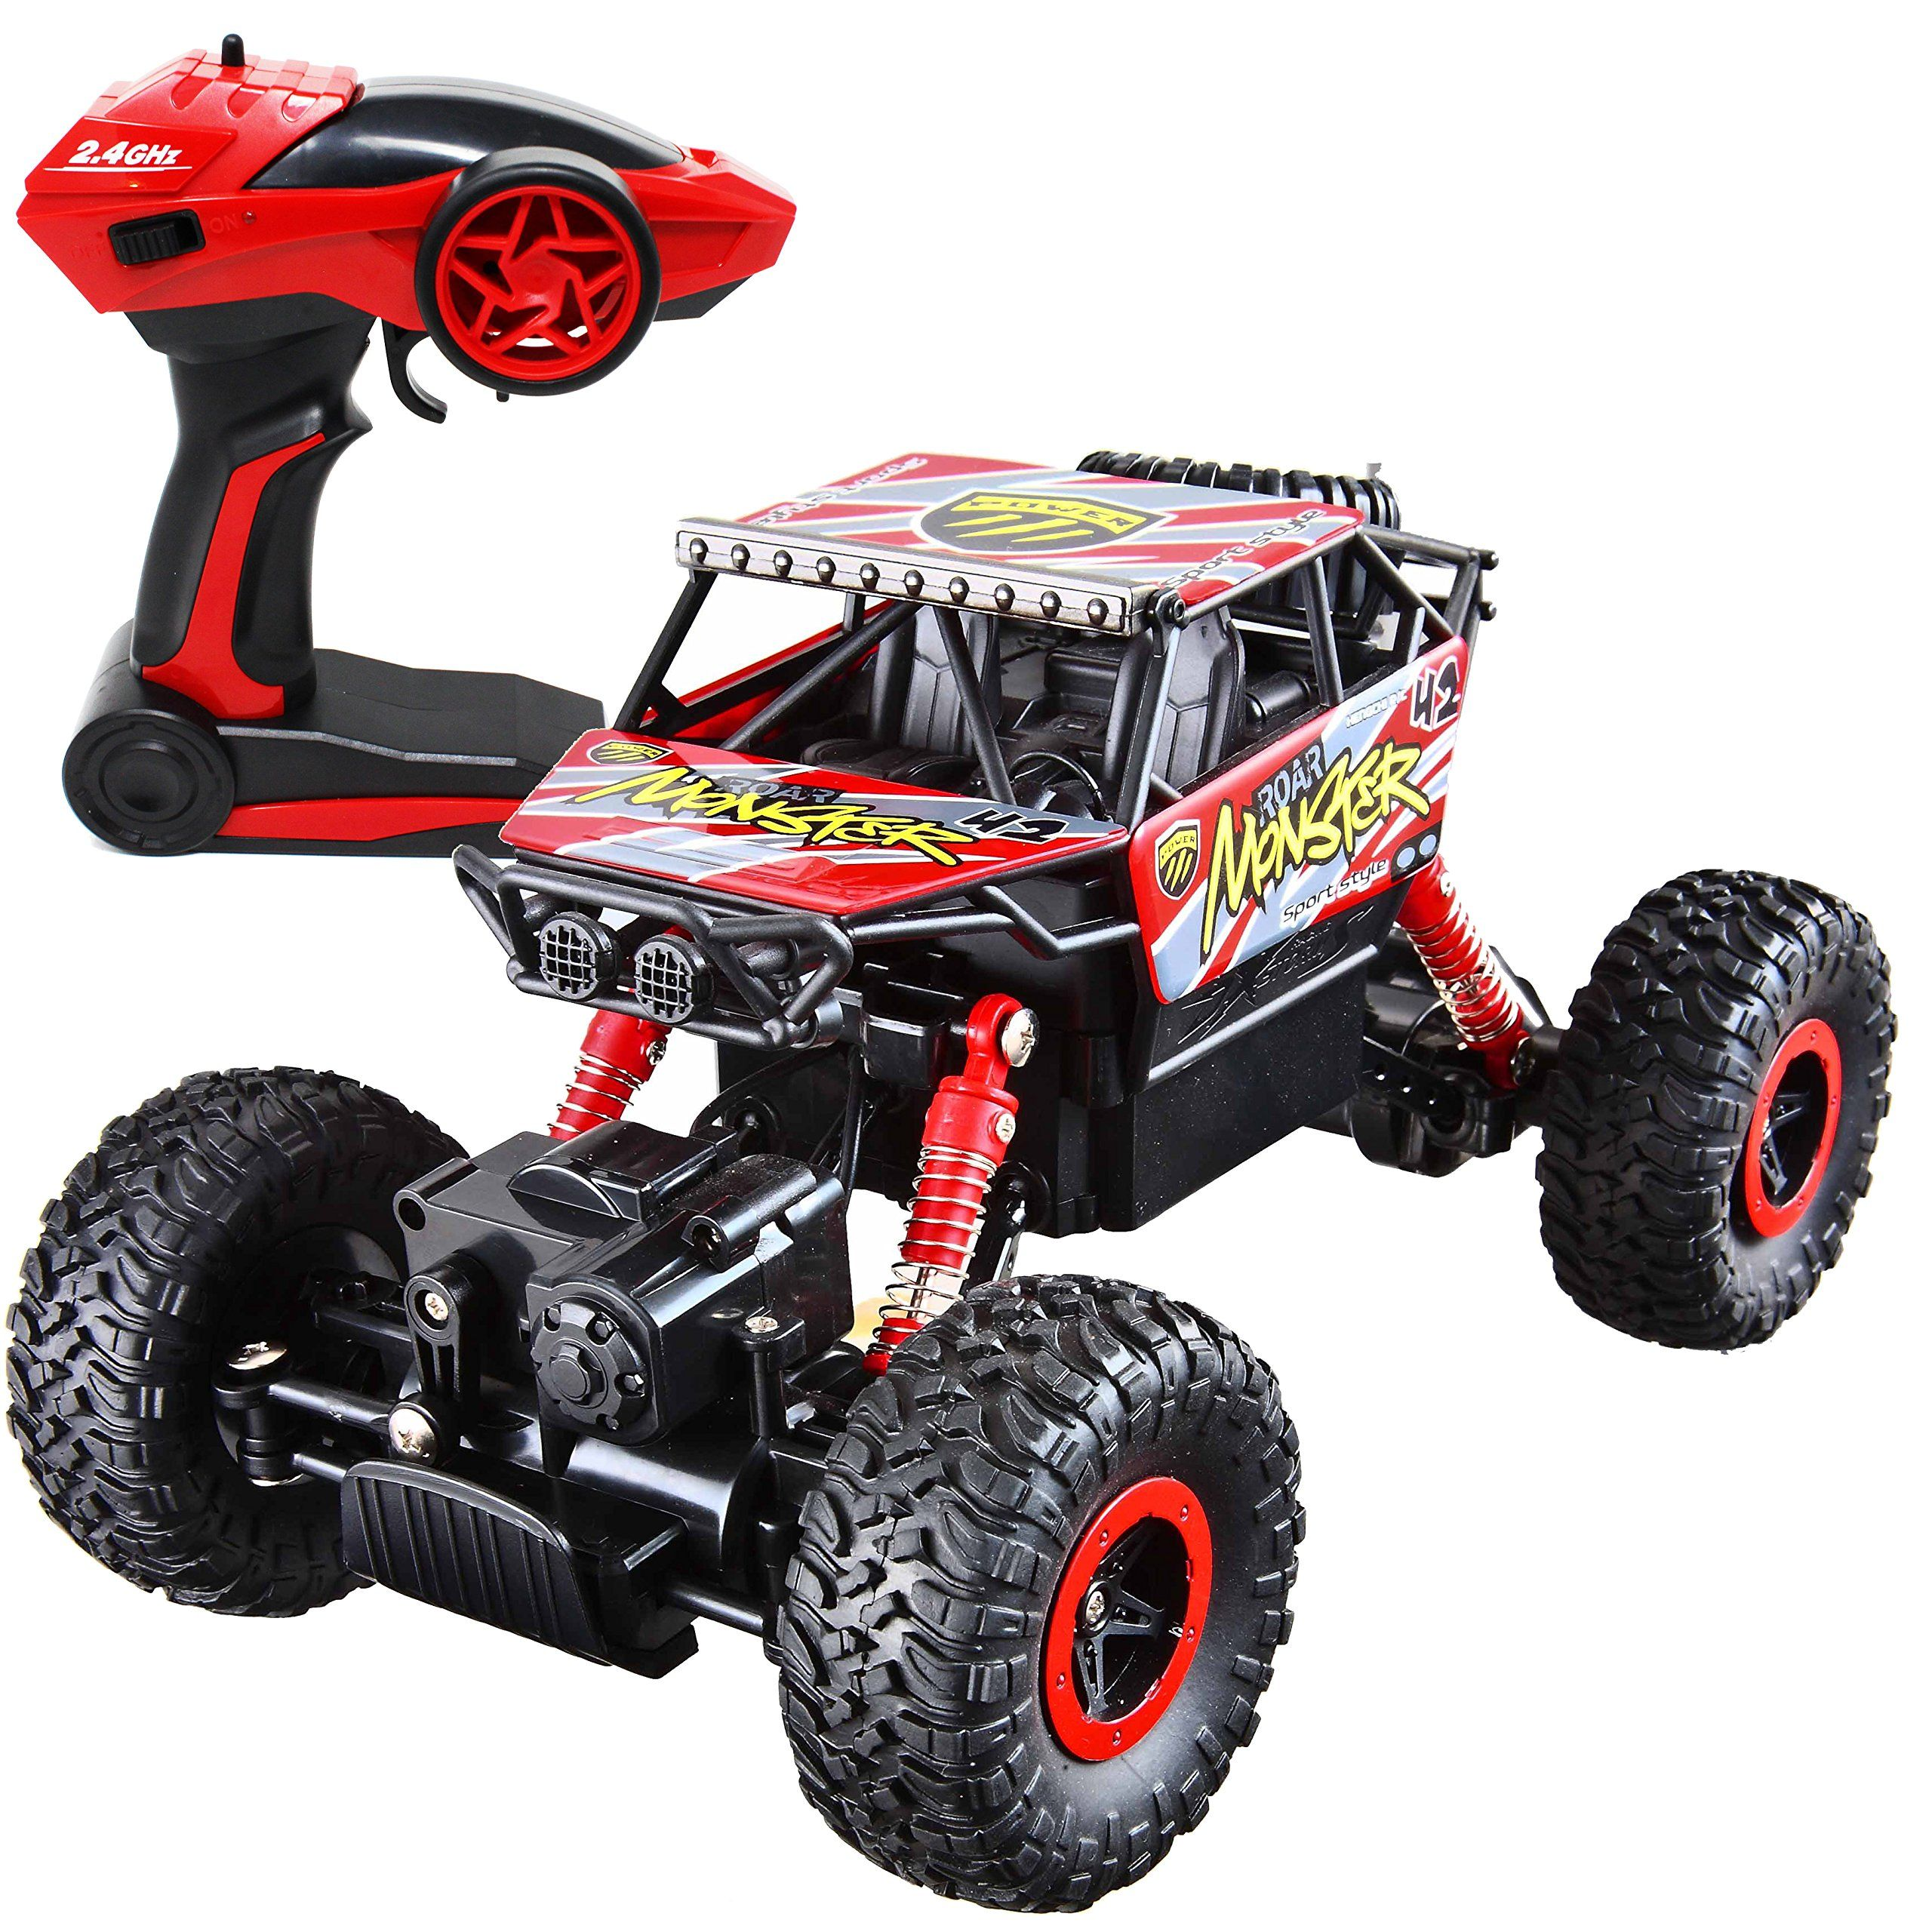 Alibabacom offers 198 wltoys mini rc car products About 97 of these are radio control toys A wide variety of wltoys mini rc car options are available to you such